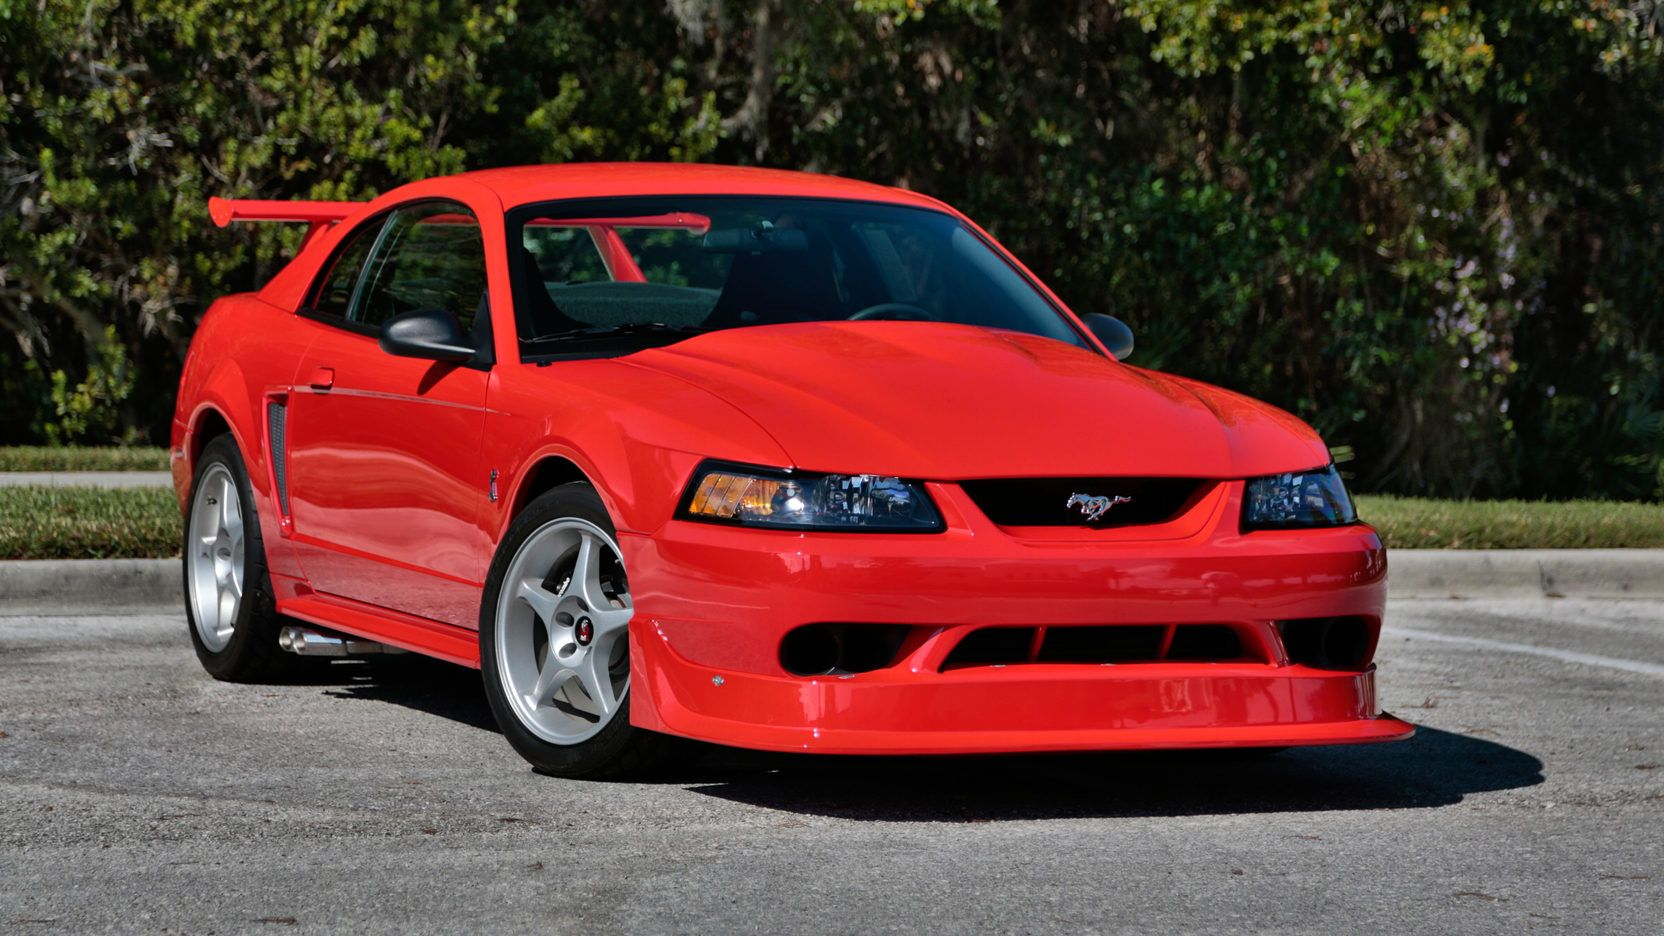 2000 Ford Mustang Svt Cobra R 1 Print Image 2000 Ford